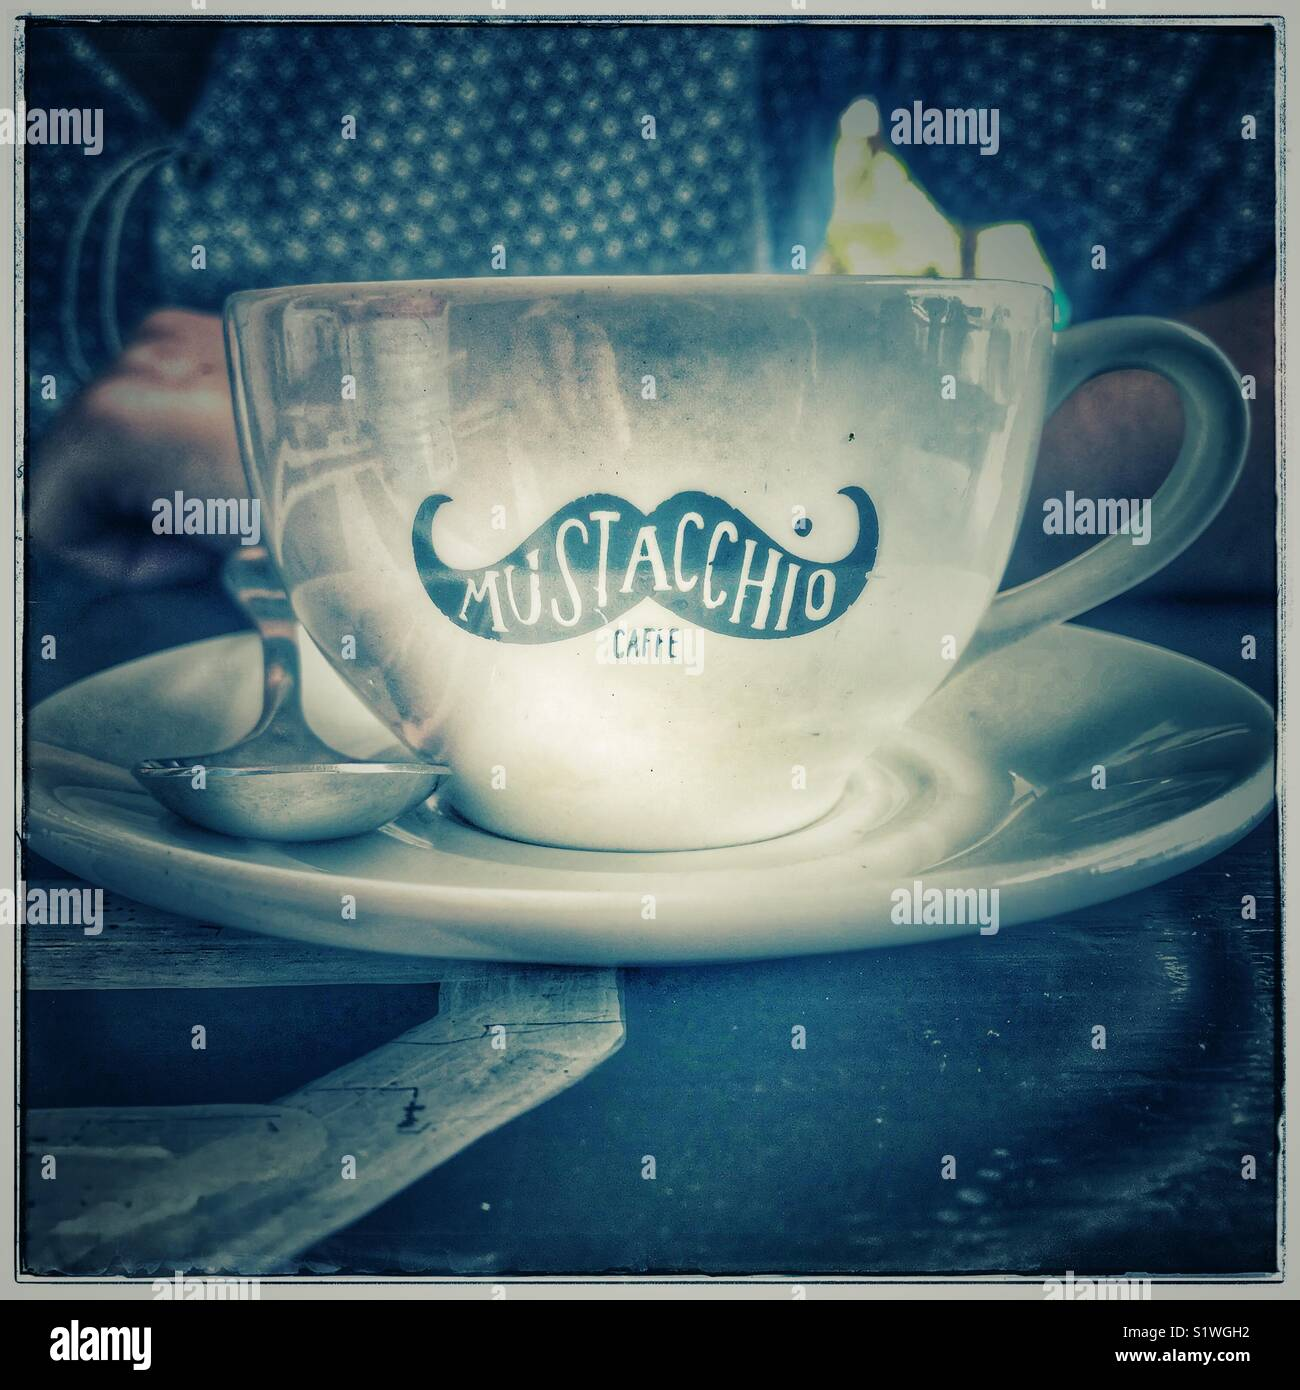 Mustacchio Cafee, Kloof Street, Cape Town. - Stock Image